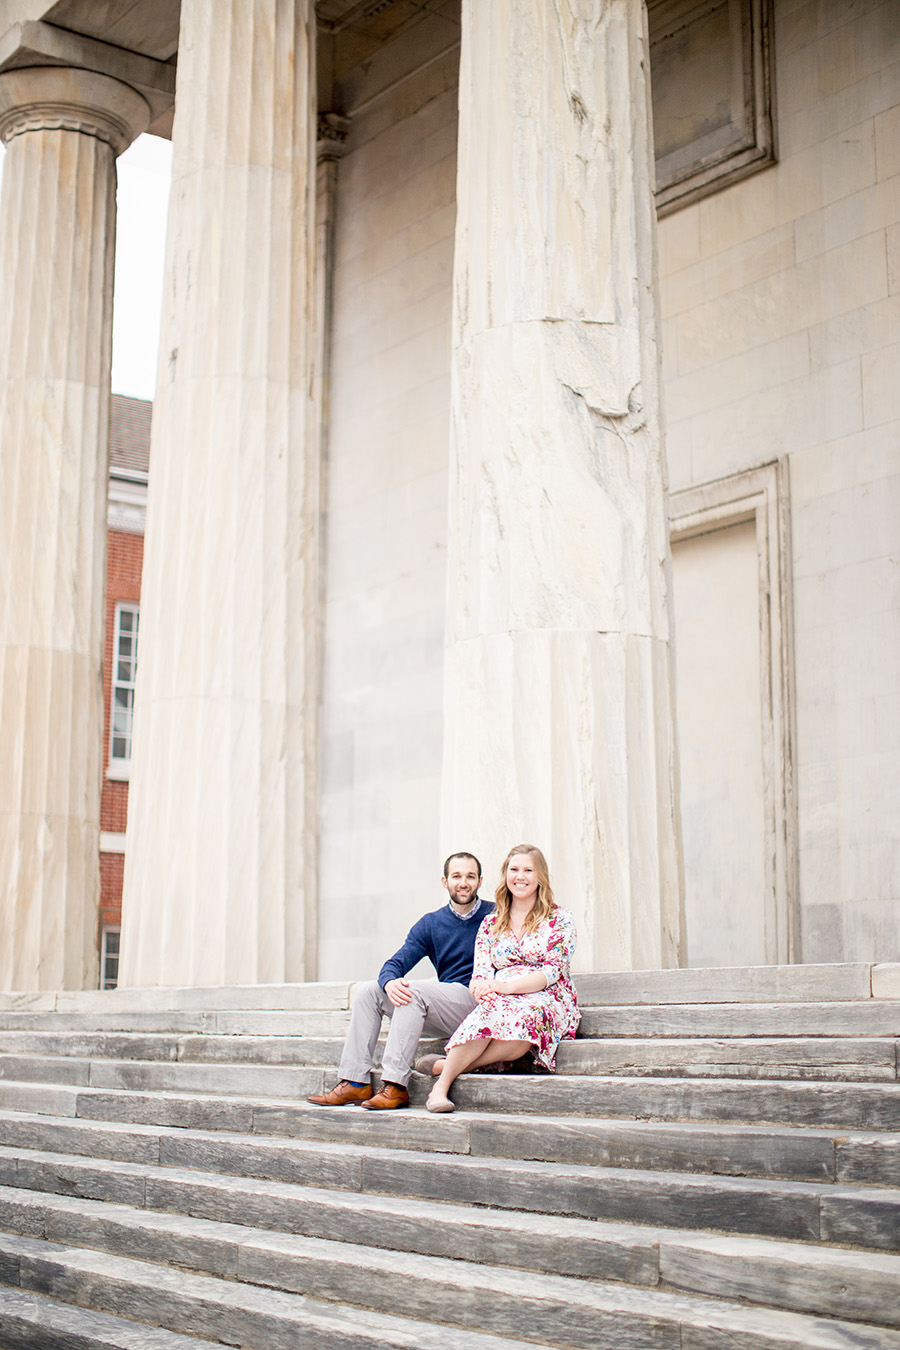 engaged pair sits on steps together